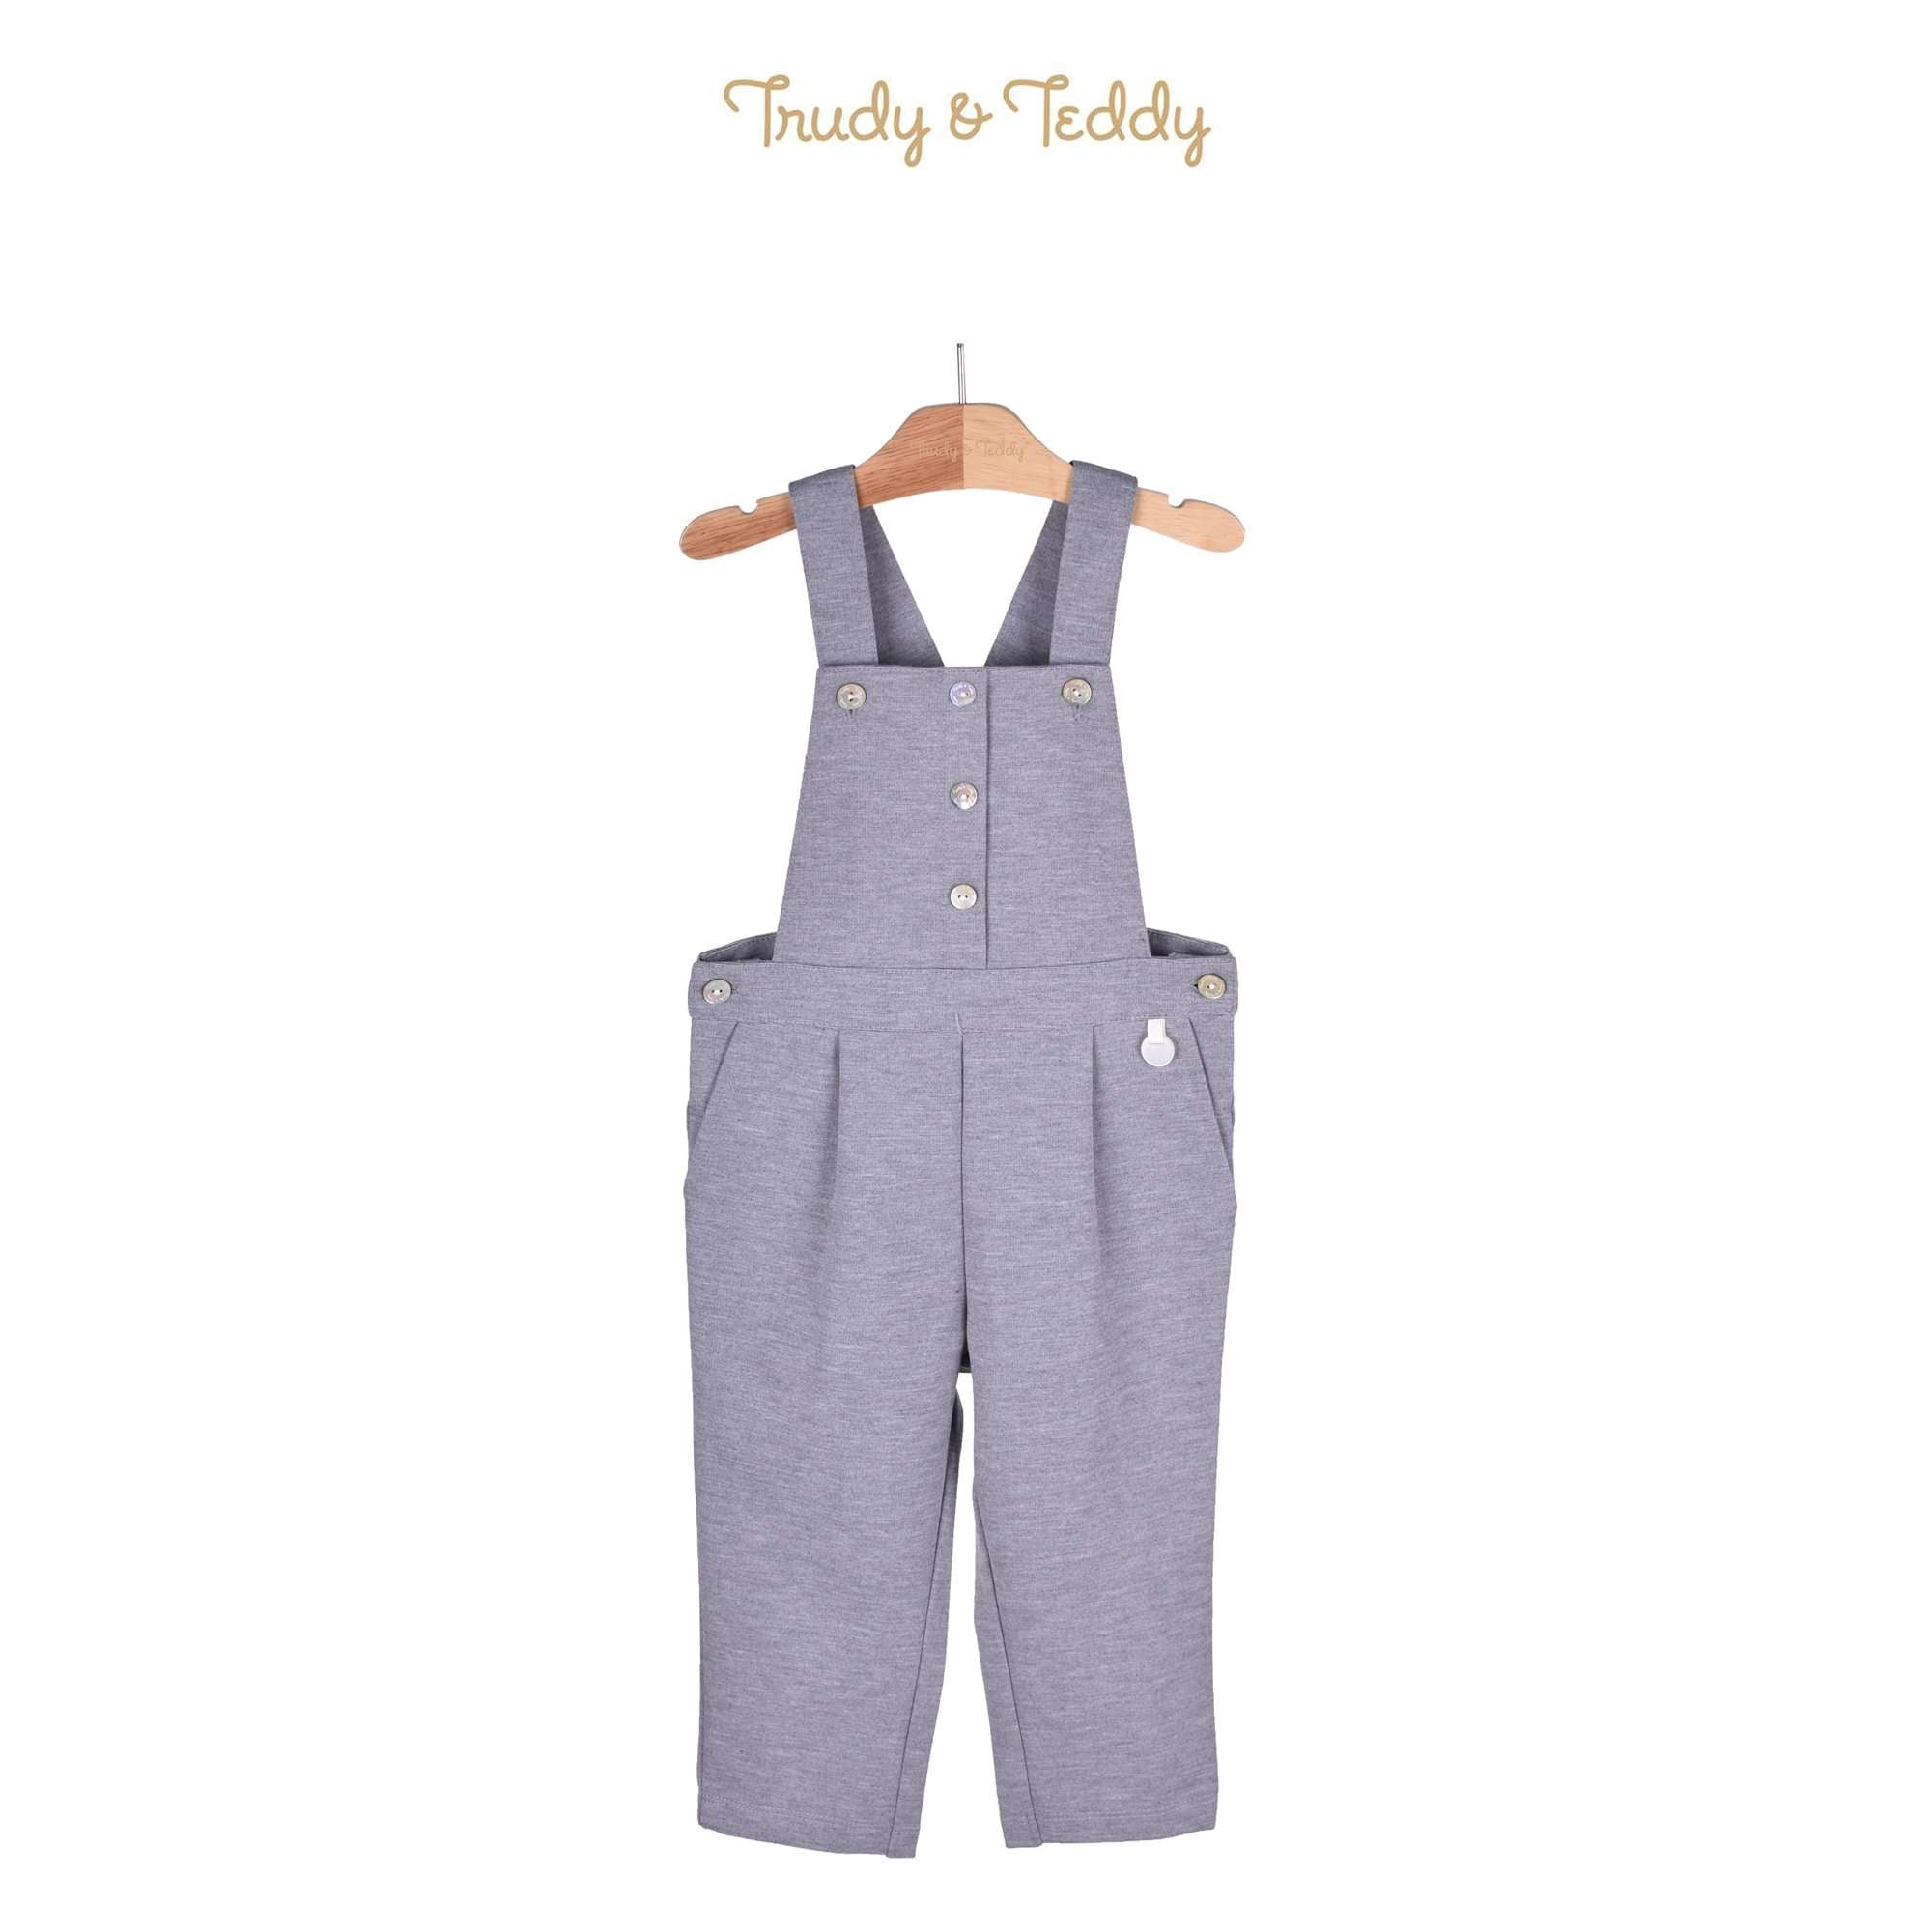 Trudy & Teddy Toddler Girl Overall 815143-271 : Buy Trudy & Teddy online at CMG.MY